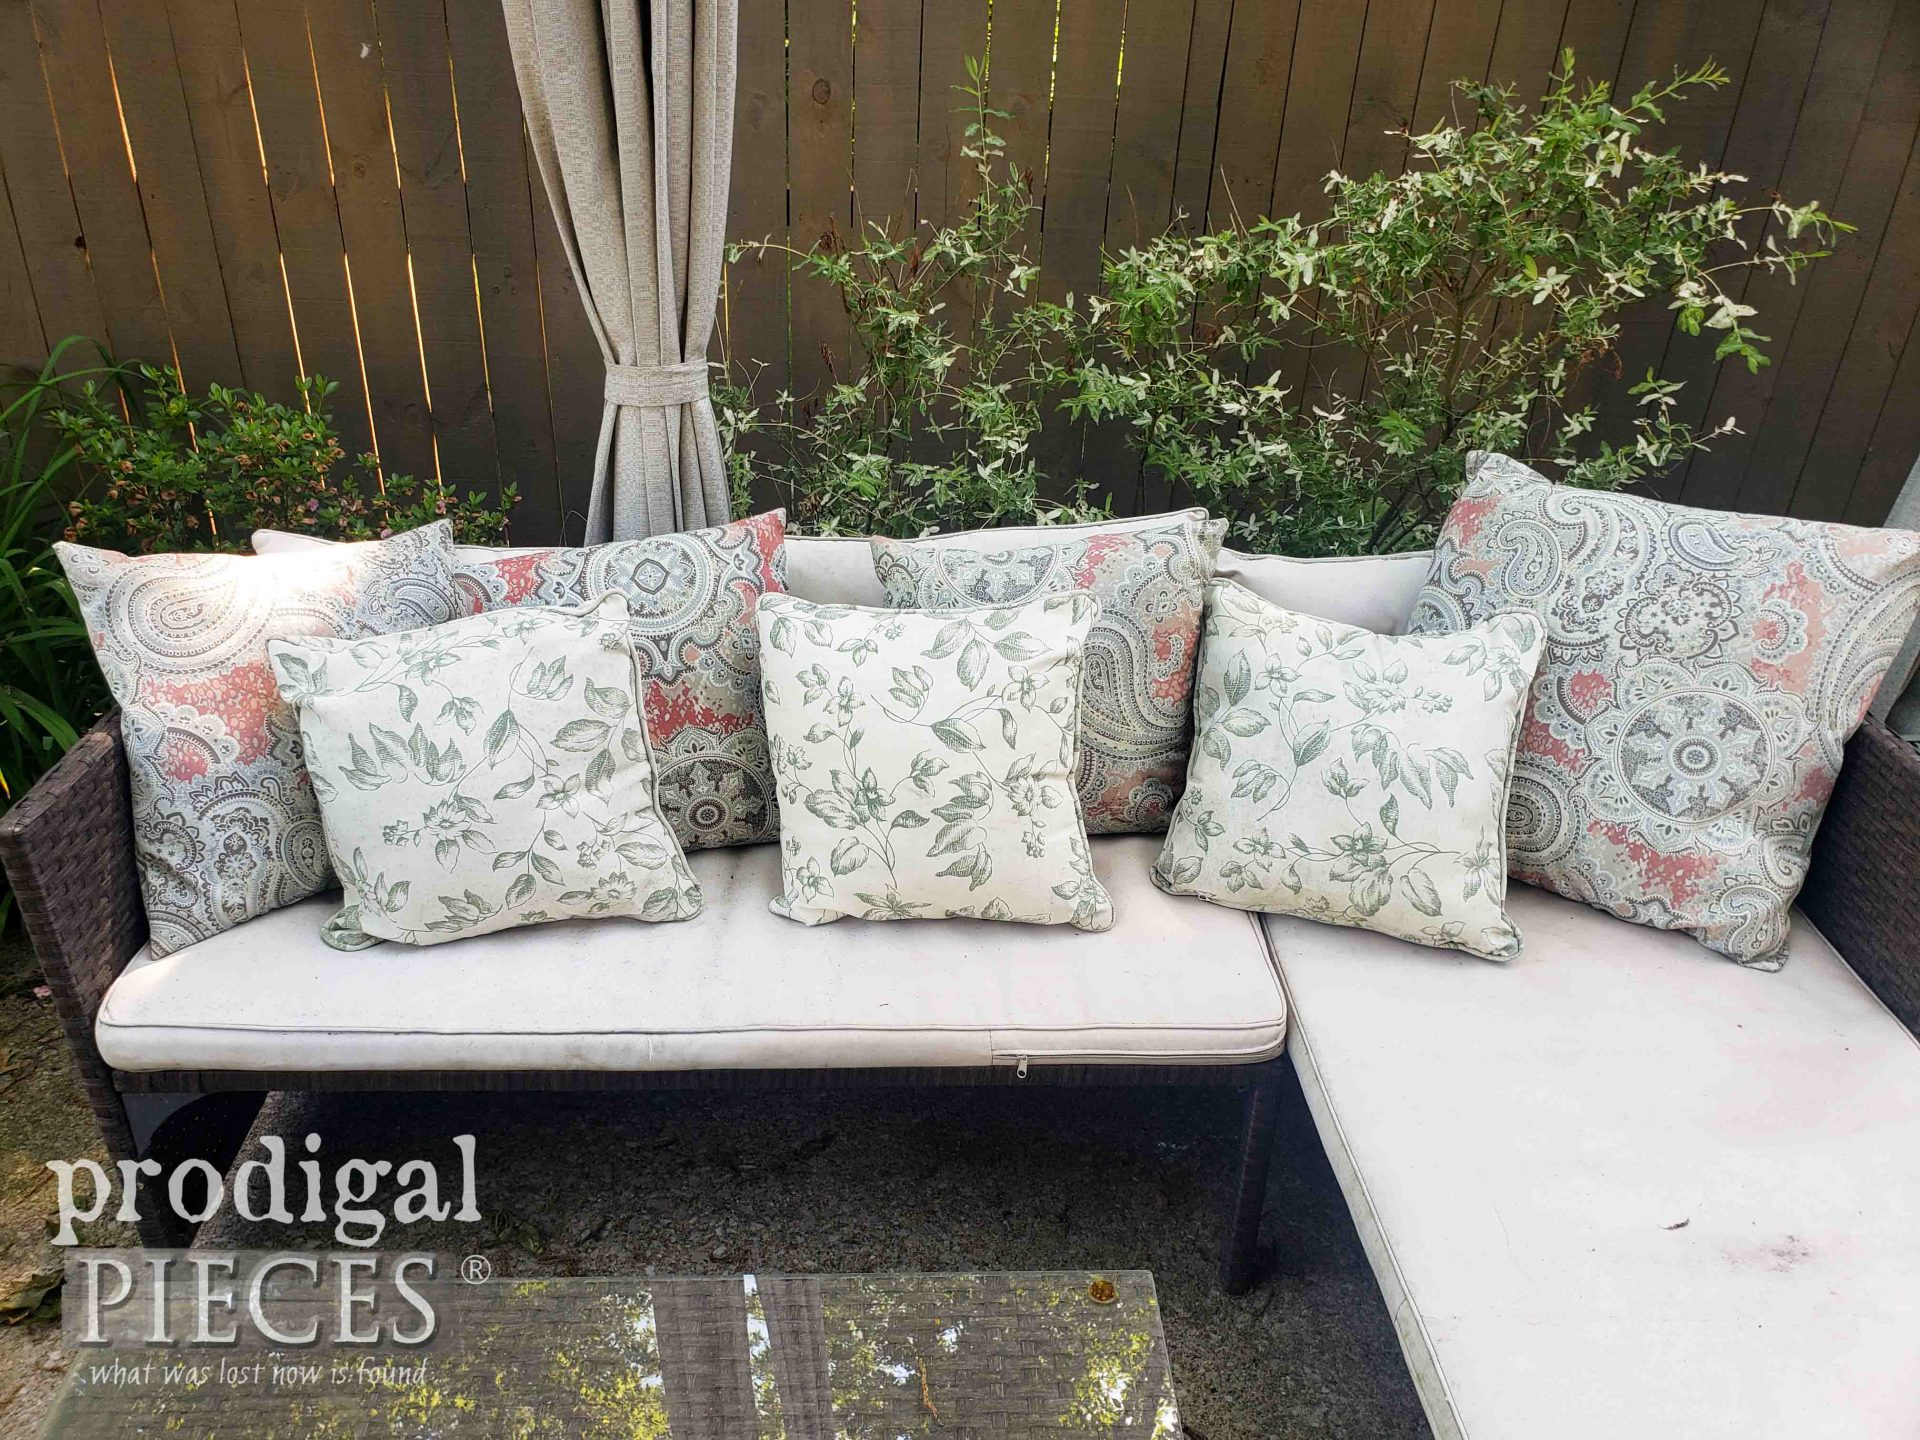 Patio Sectional Couch Before Update | prodigalpieces.com #prodigalpieces